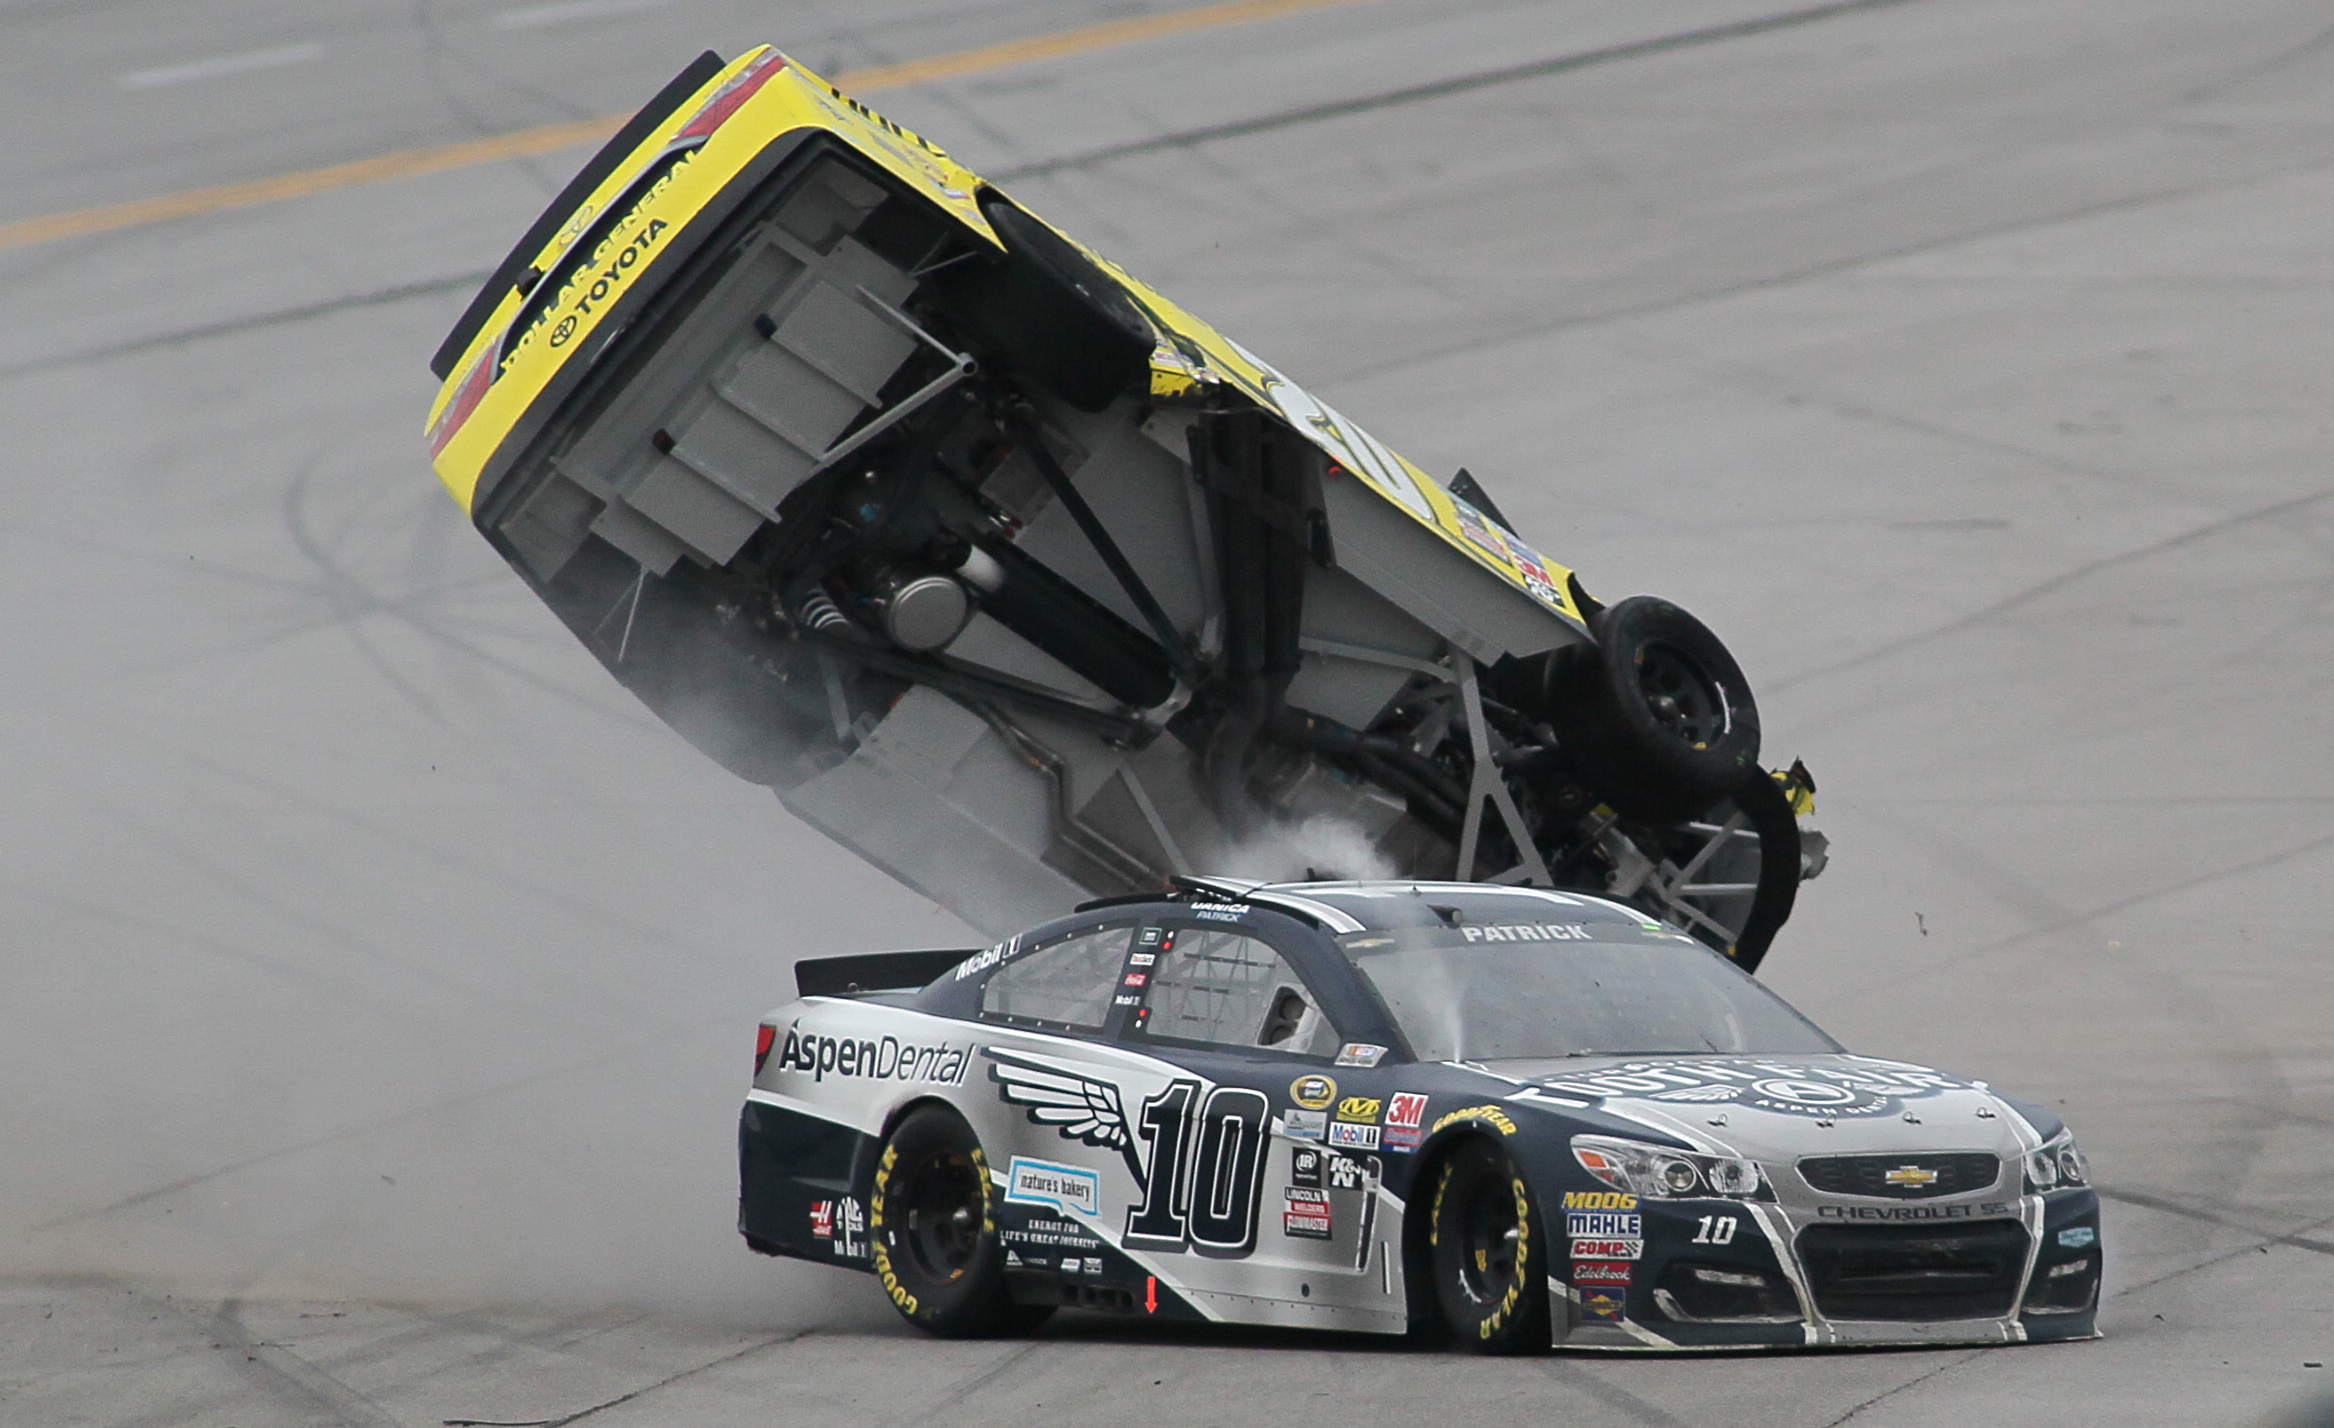 Matt Kenseth's car flips after  Danica Patrick (10) crashed into him during the NASCAR Talladega auto race at Talladega Superspeedway, Sunday, May 1, 2016, in Talladega, Ala. (AP Photo/Greg McWilliams)